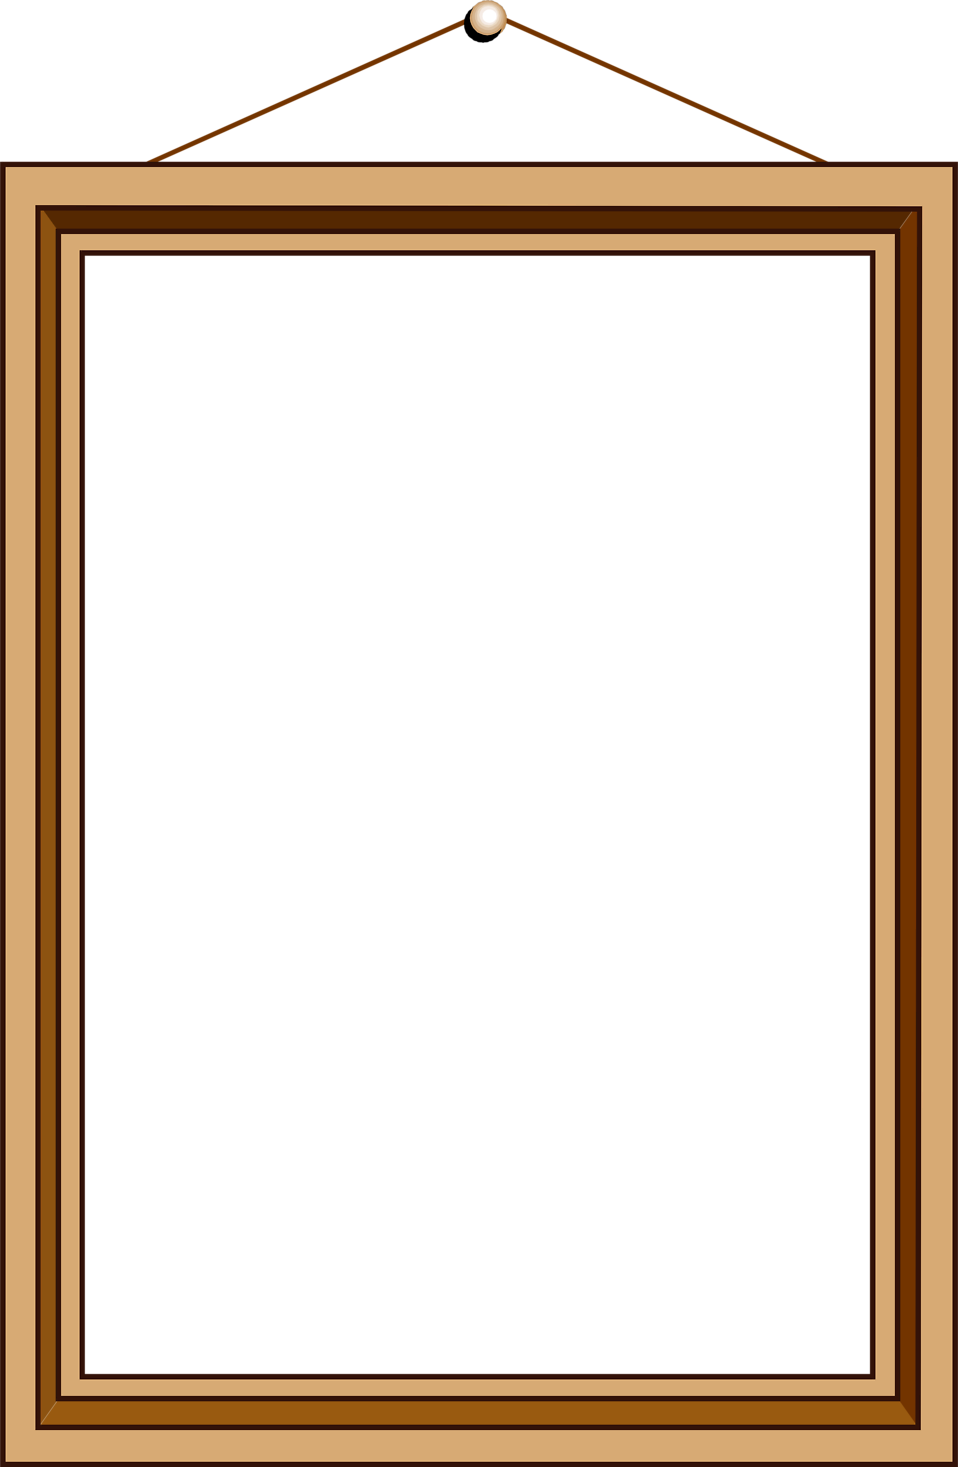 Website frame clipart clipart royalty free Empty picture frame clipart clipart kid 2 - Clipartix clipart royalty free